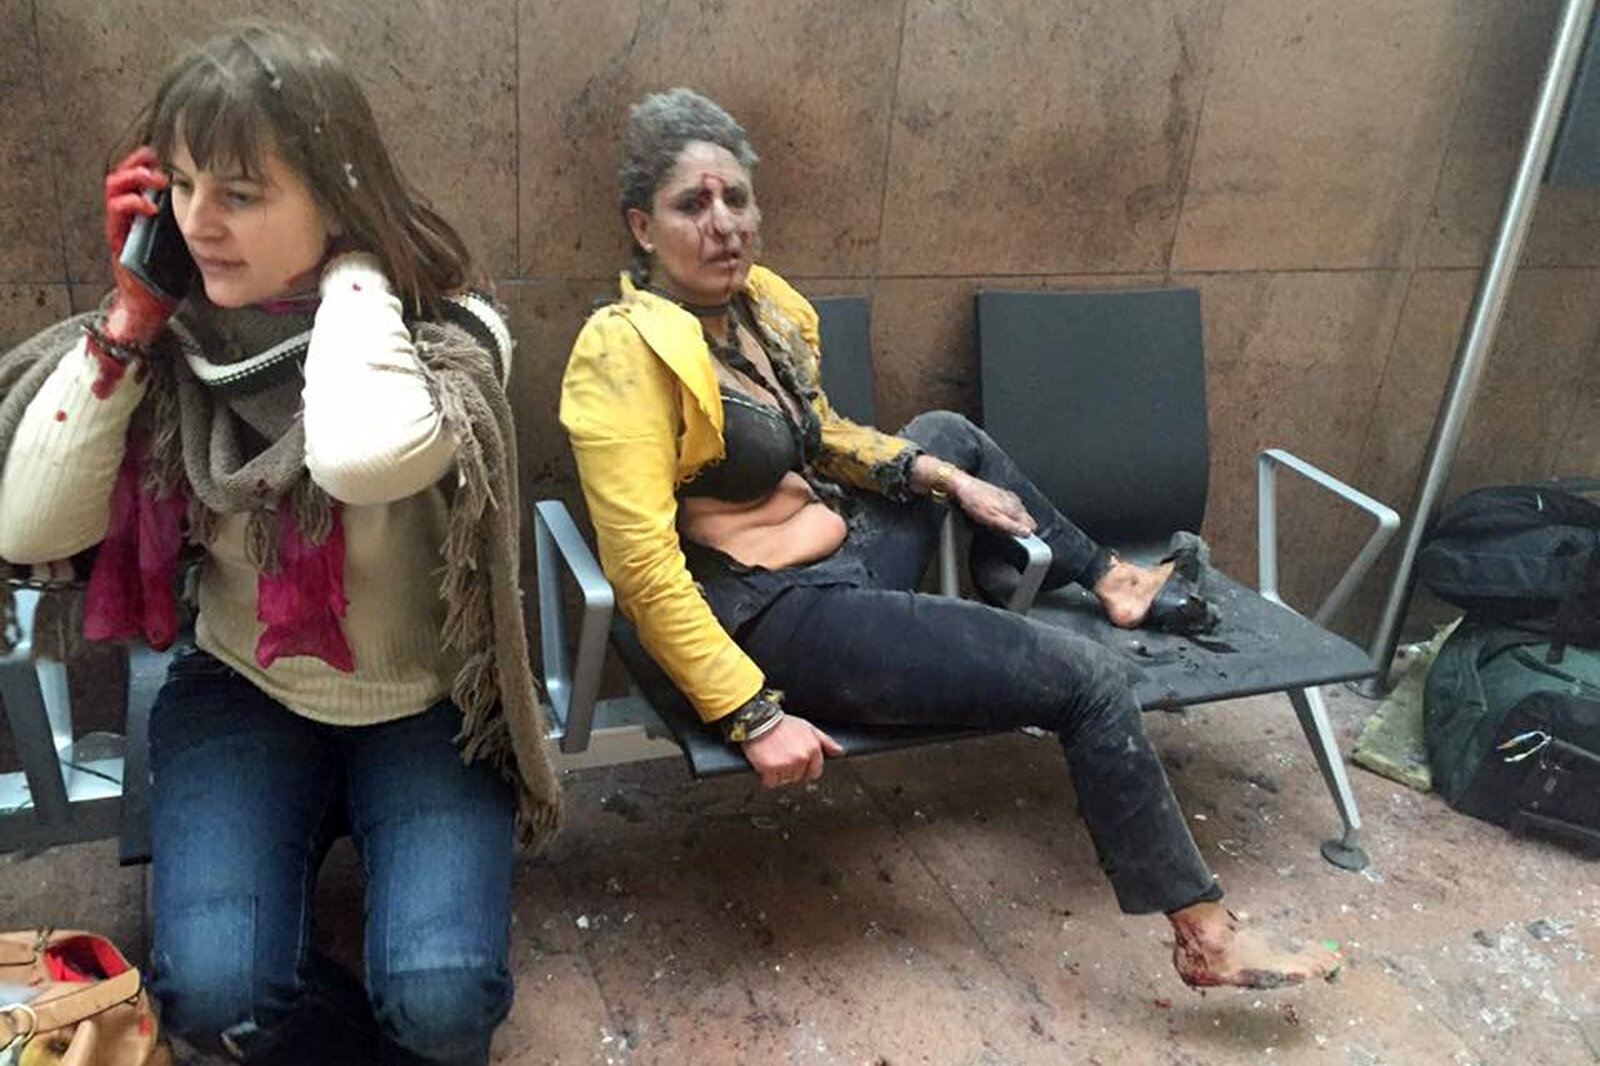 Two women wounded in the Brussels airport in Belgium after explosions there Tuesday. Belgian media say 11 people died in the airport attack.